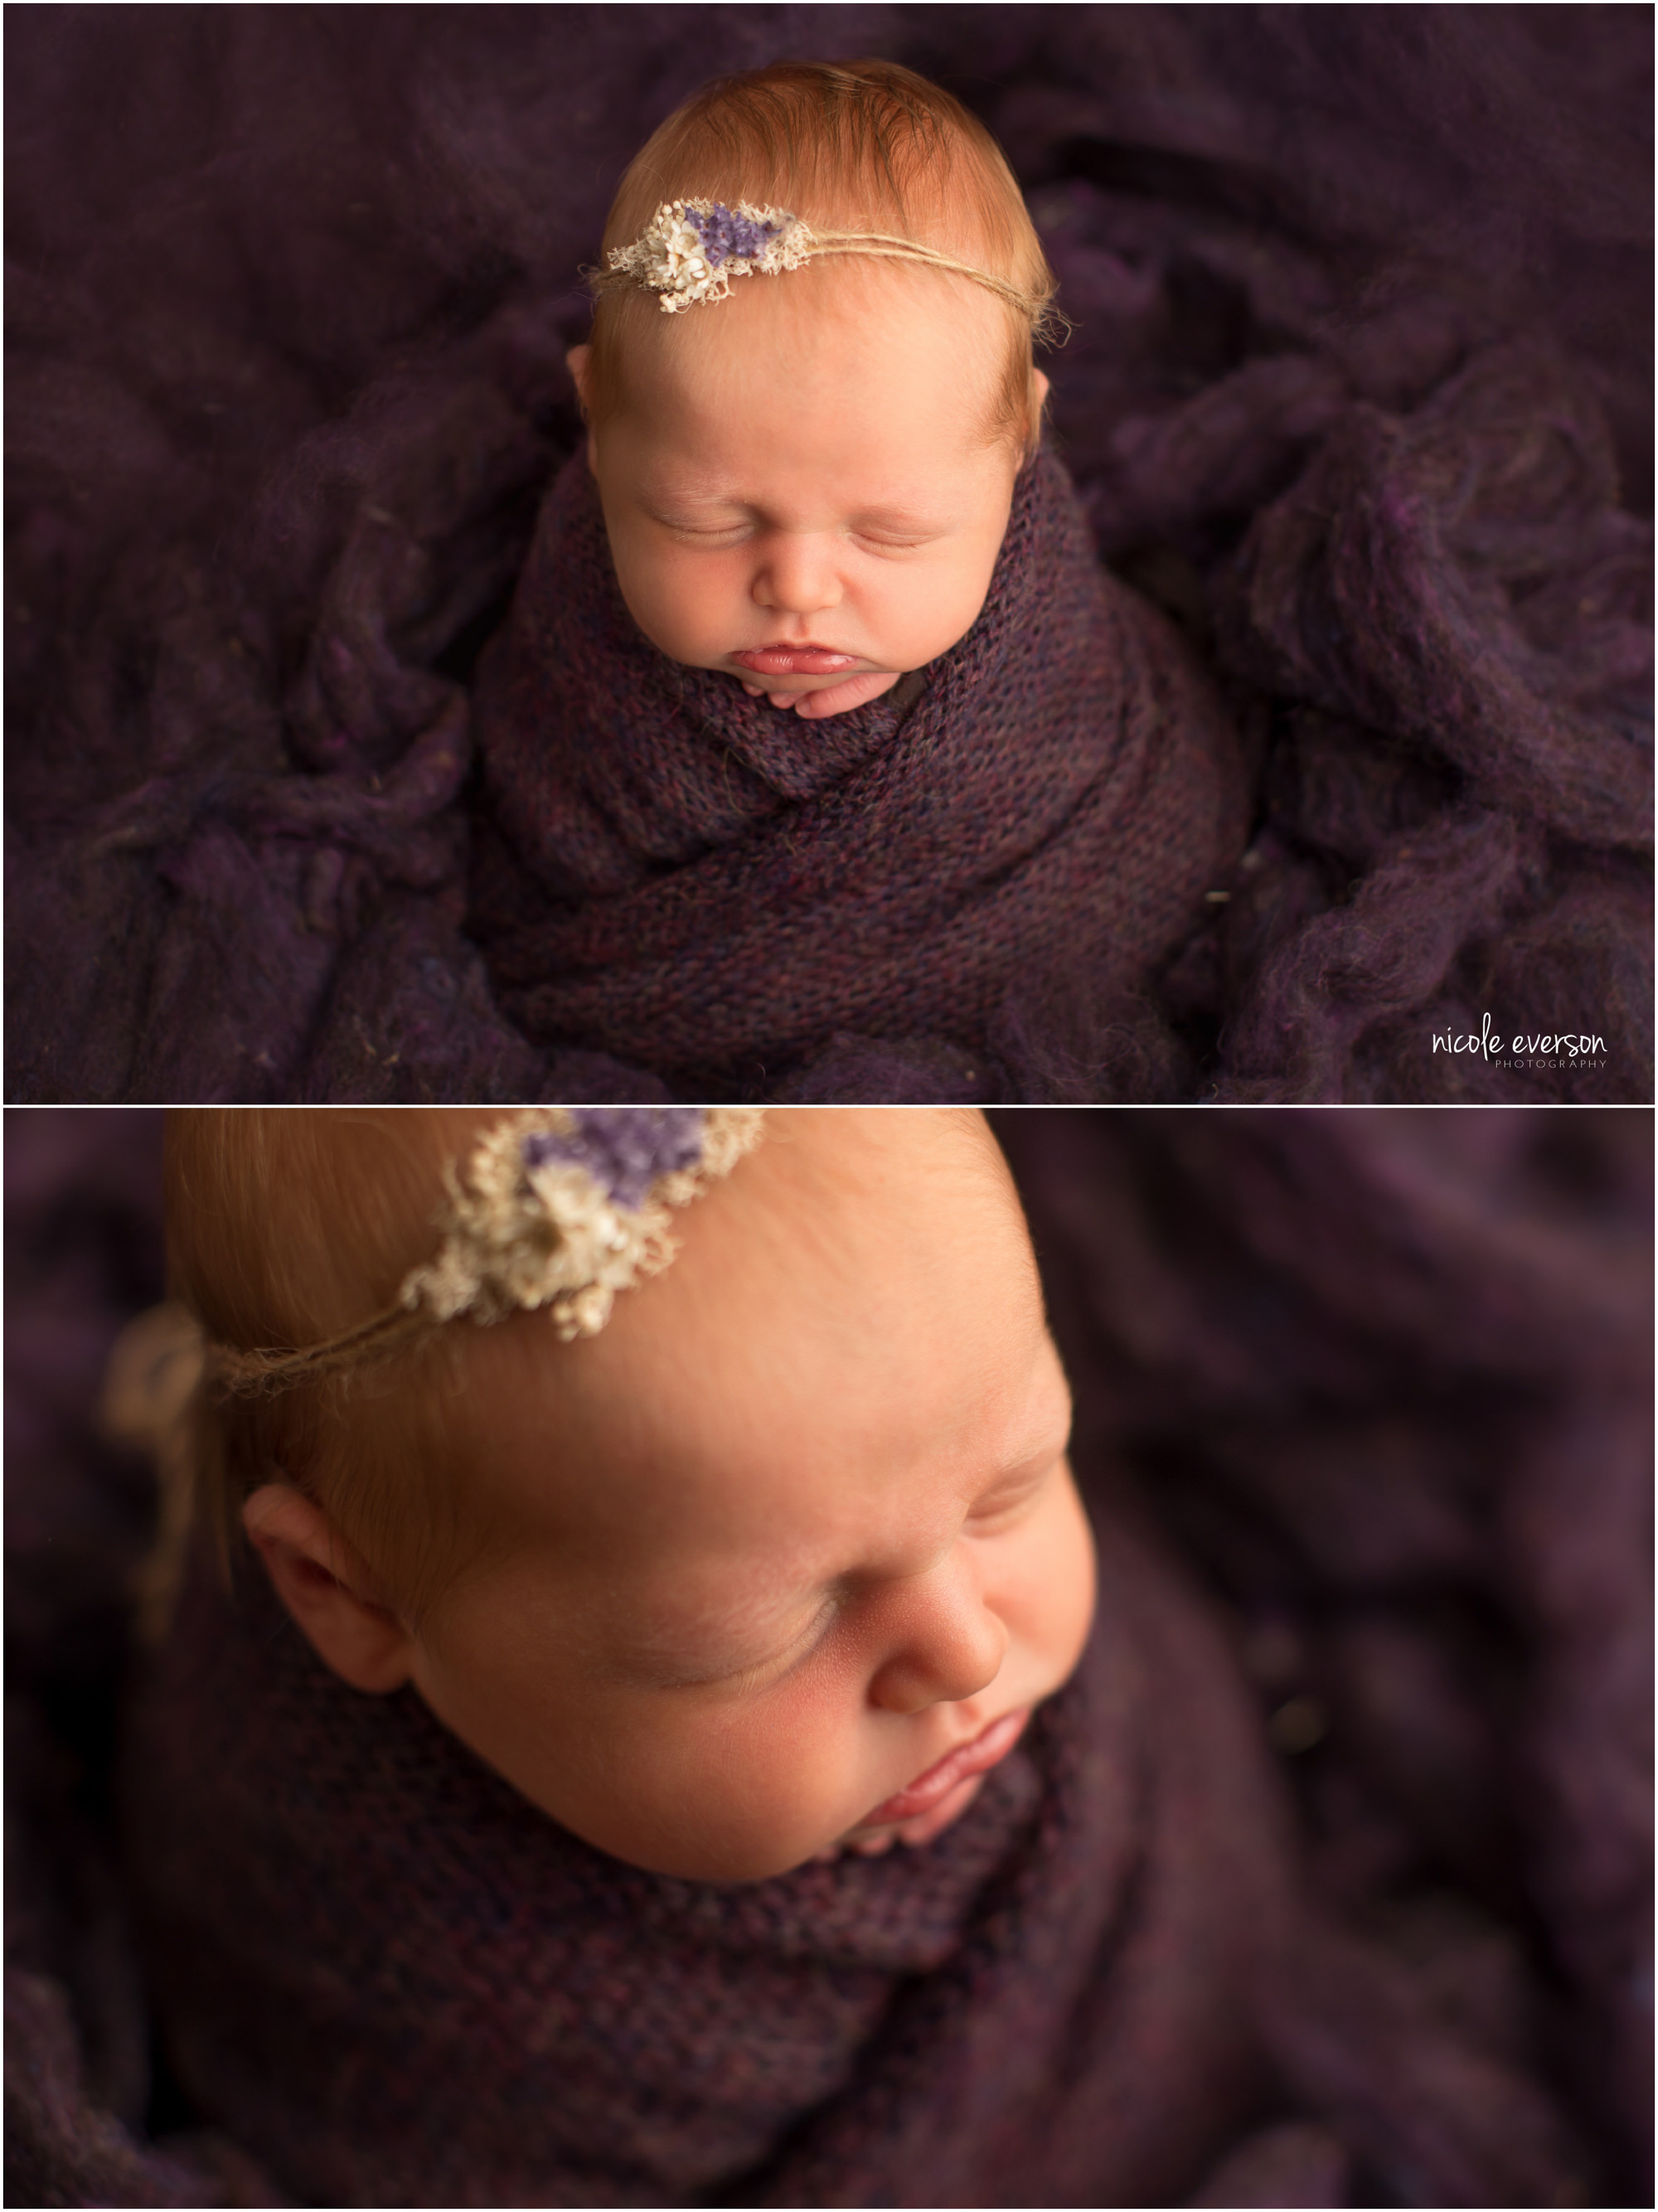 newborn baby wrapped in a purple photography prop